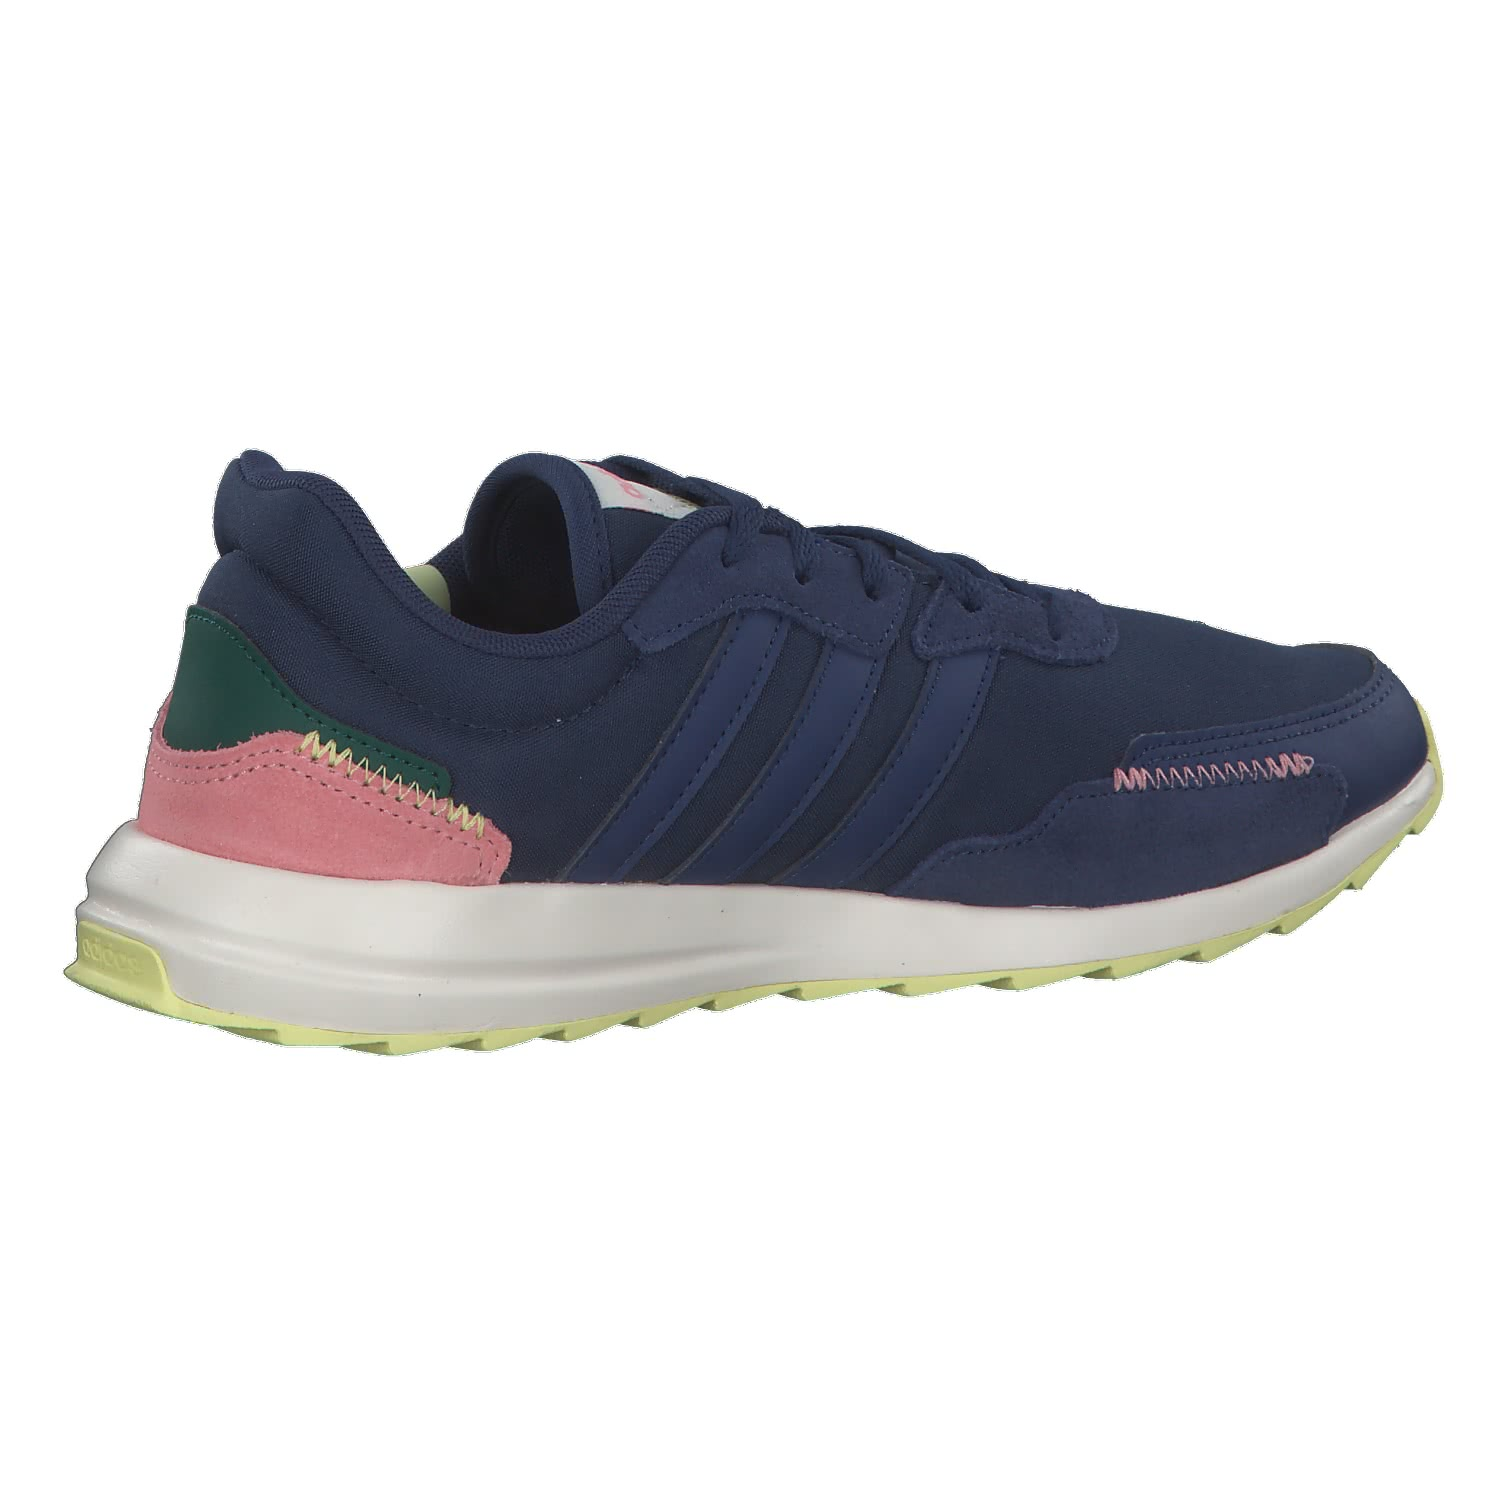 Teamsport Philipp | Adidas Retrorun Damen 39 13 EG4215